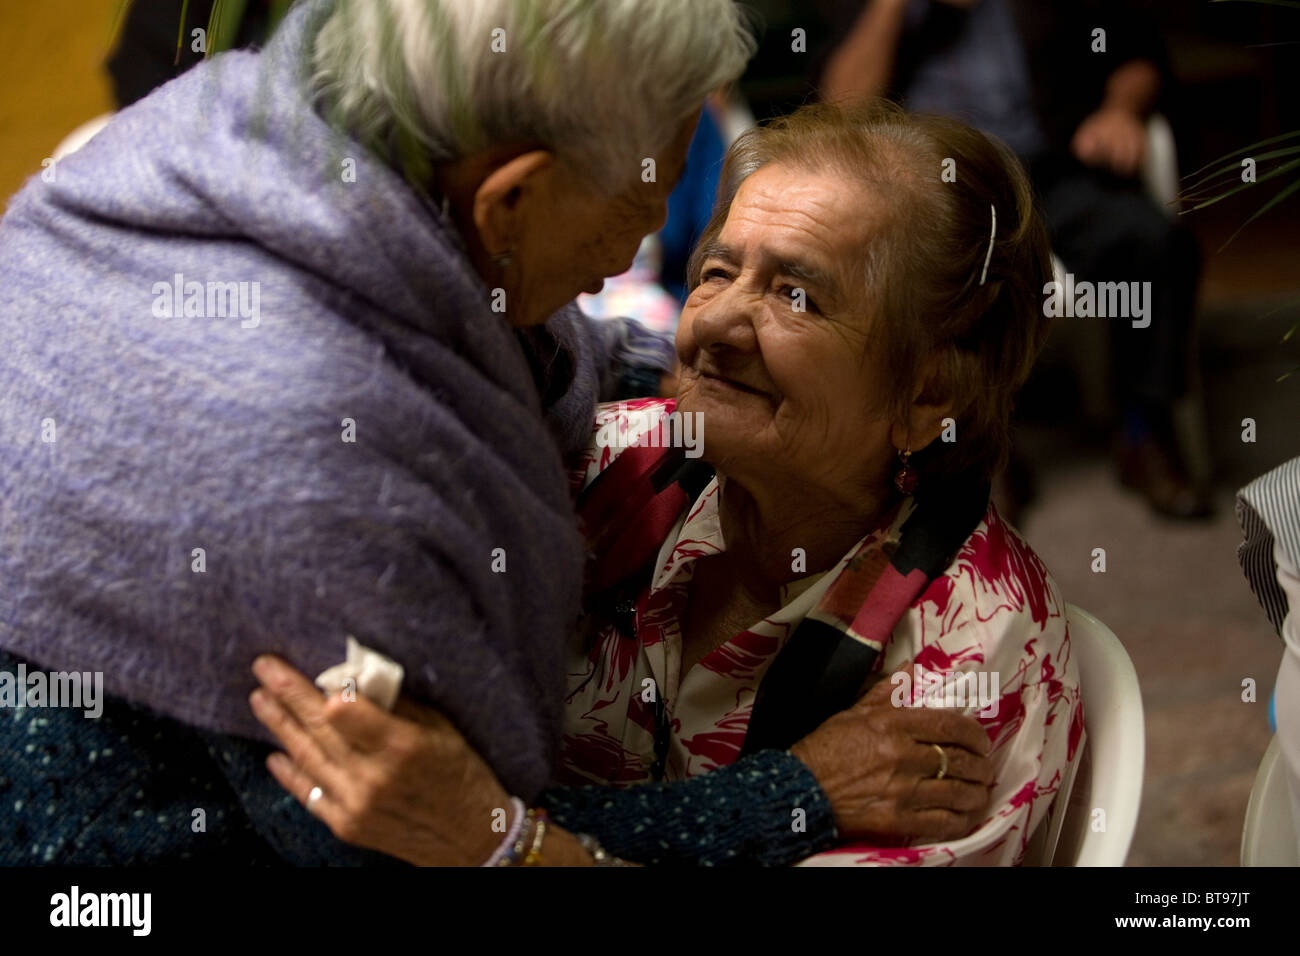 A Vicentine volunteer, left, hugs an elderly woman in Our Lady of Guadalupe Home for the Elderly, Mexico City. - Stock Image